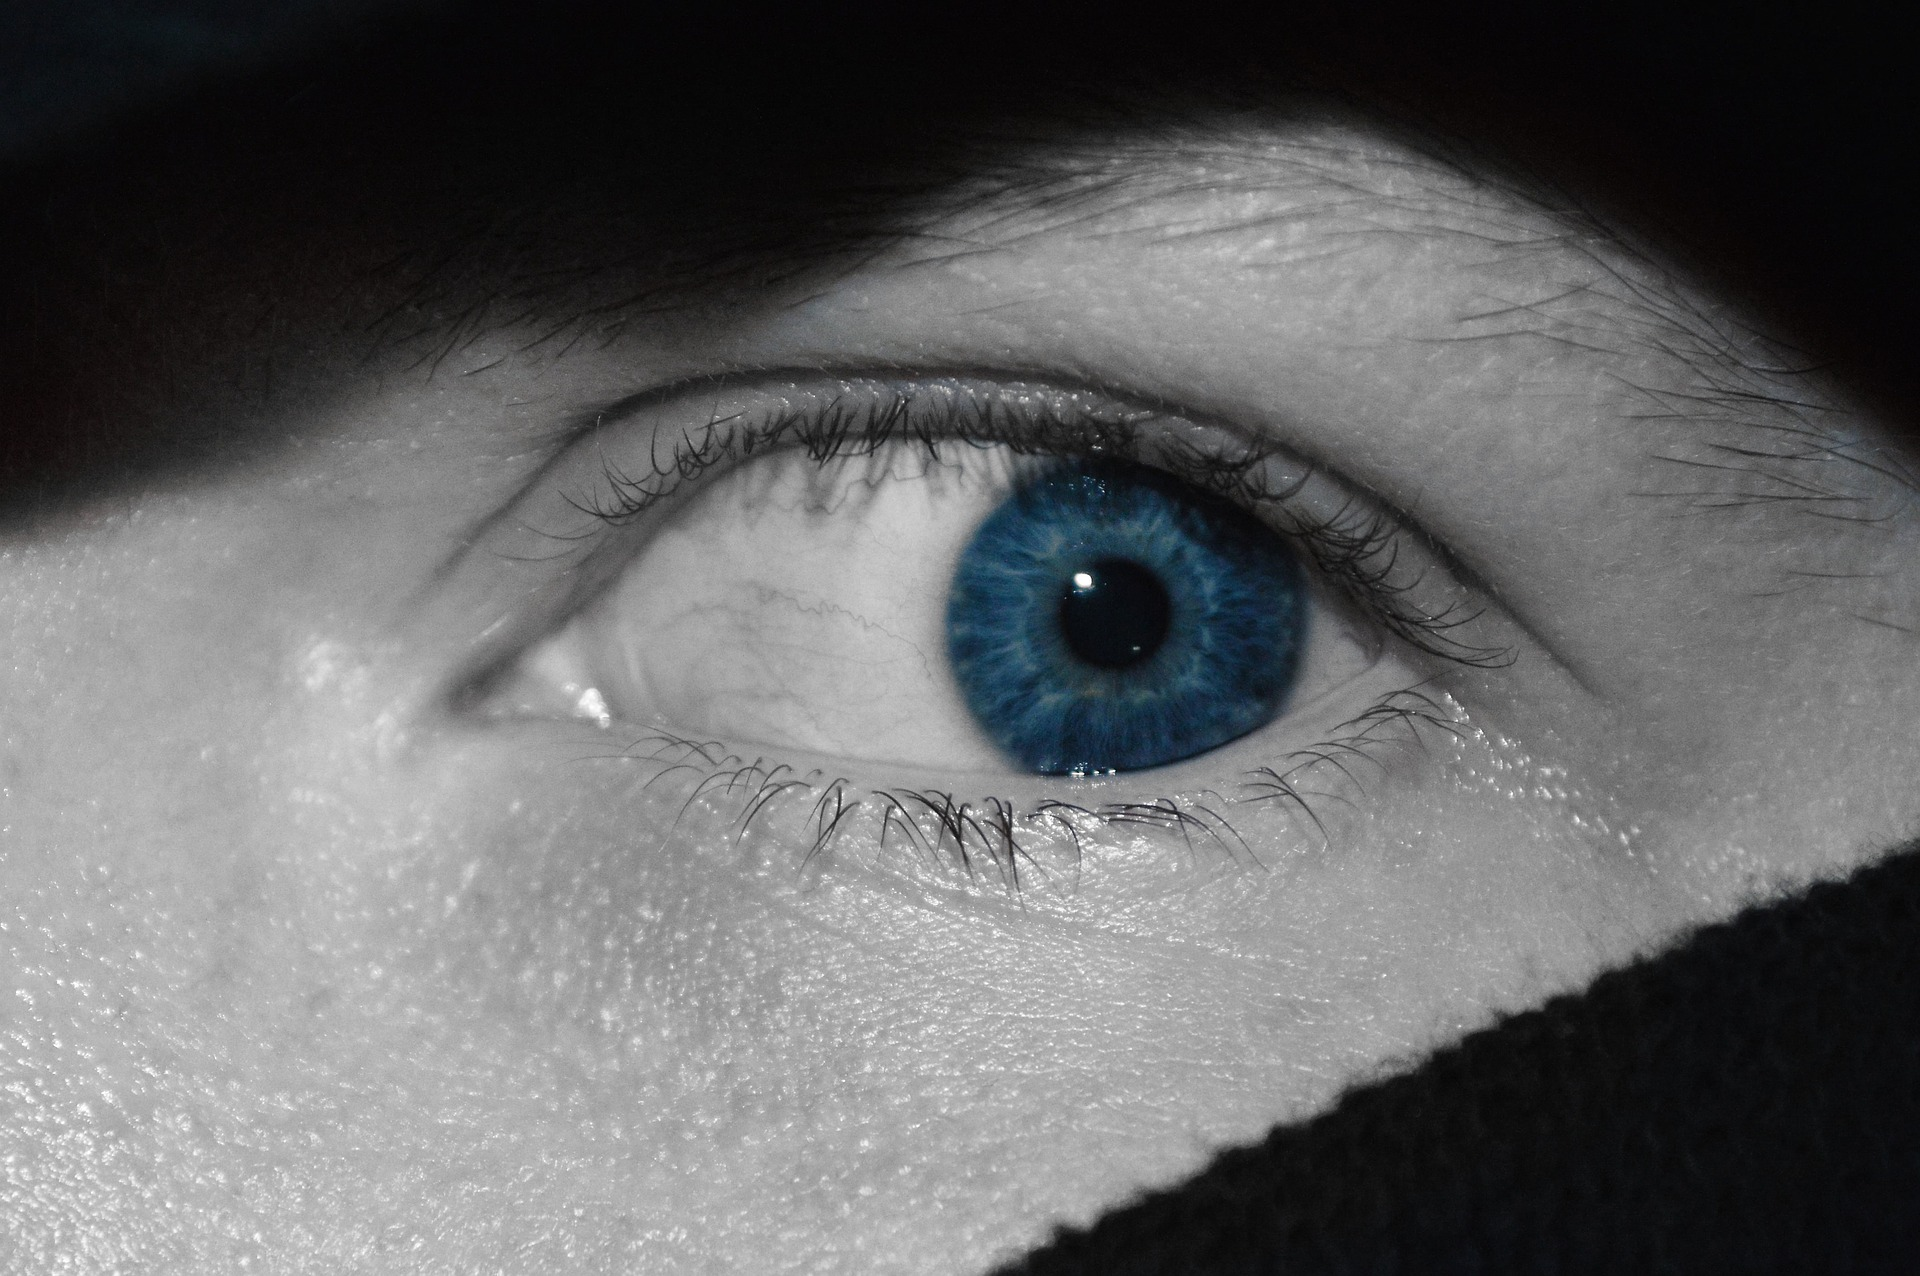 The scared blue eye of a person hiding behind a shadowy object in the dark.